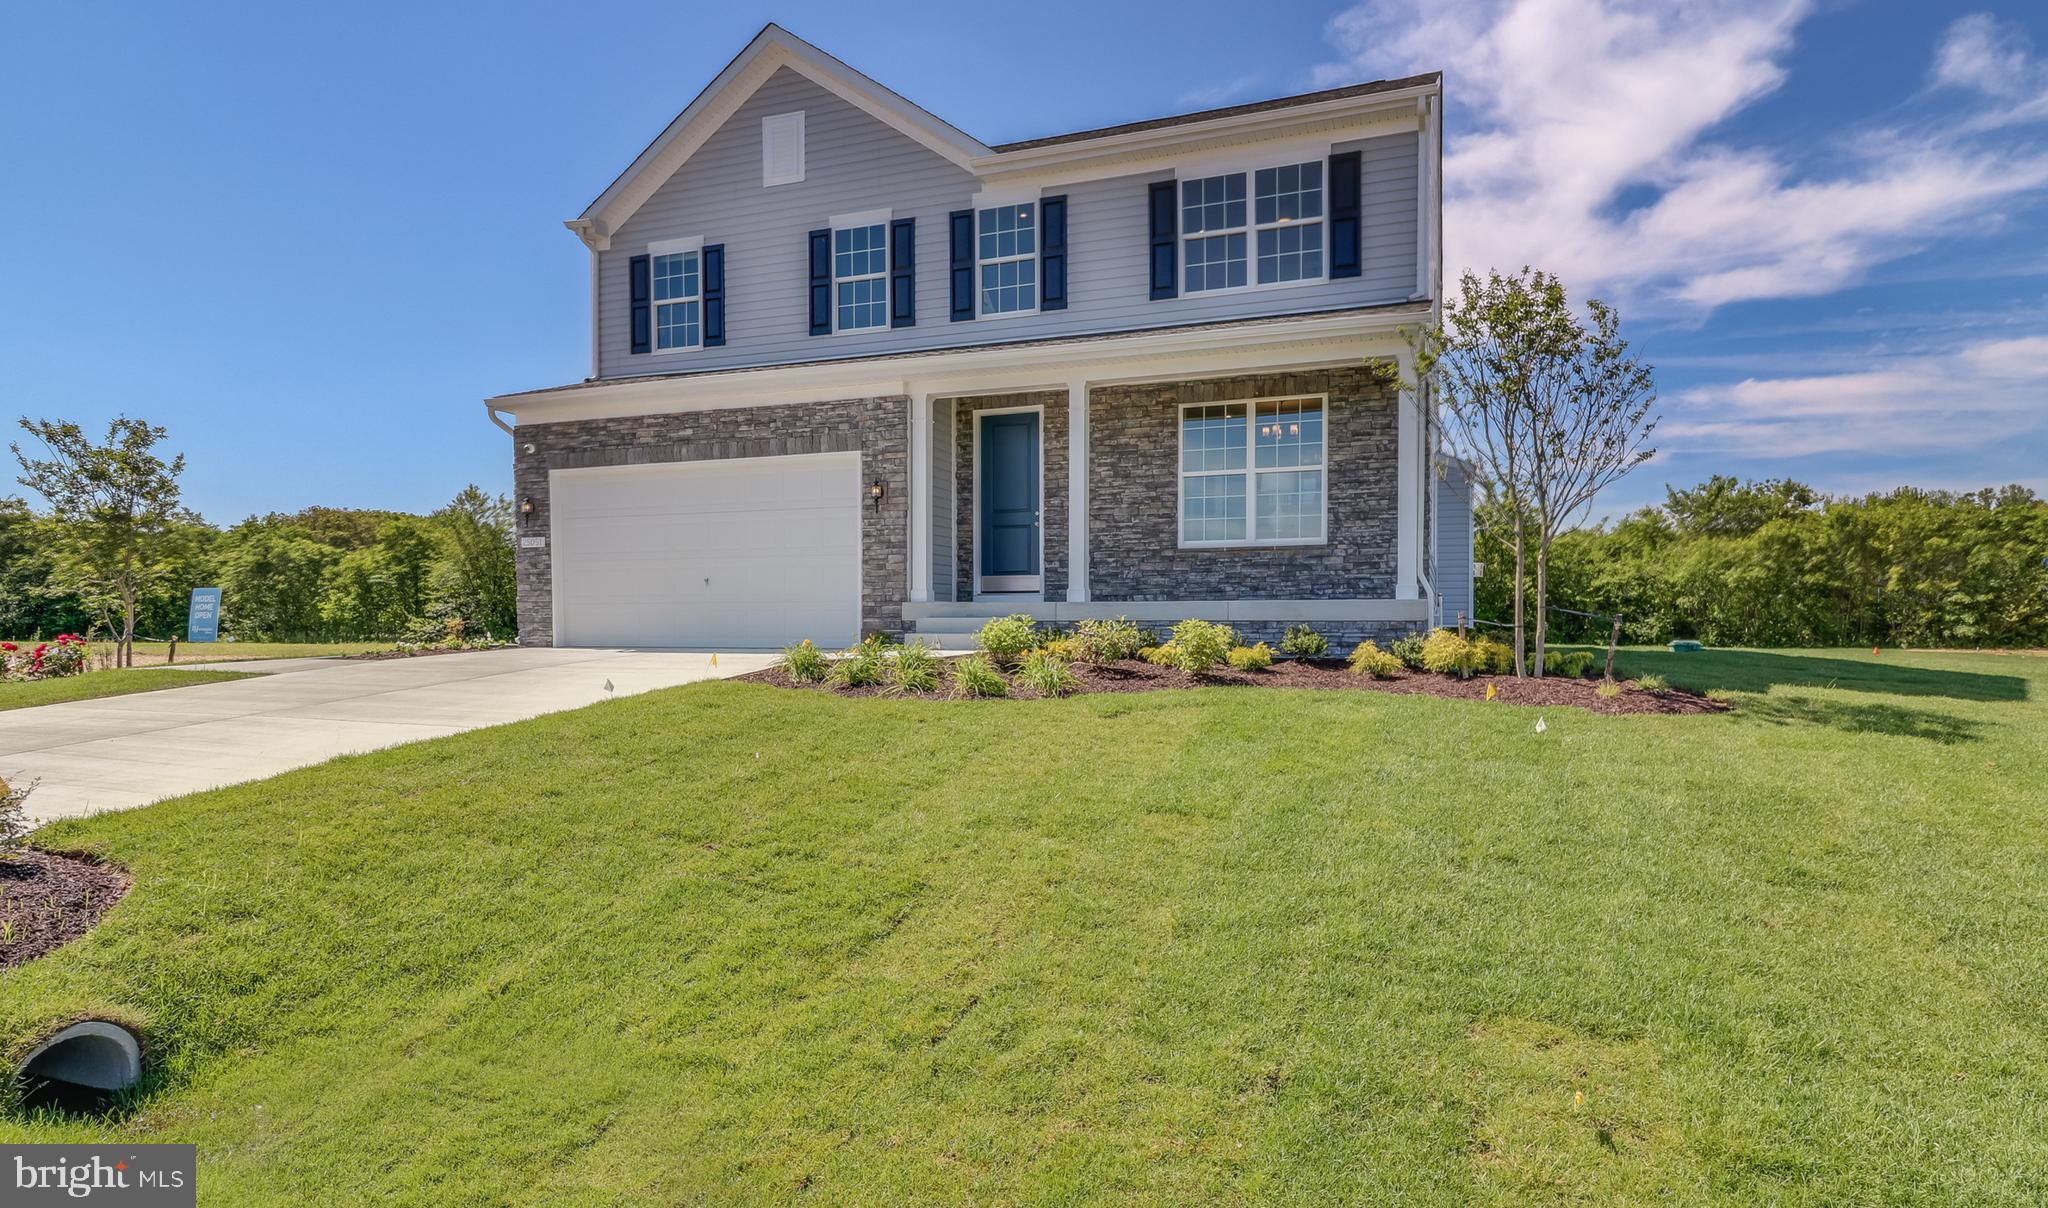 This model home comes furnished and will be available to move in no later October 31, 2021. Autumn Ridge, conveniently located in Milford, DE is a cozy enclave of 22 half-acre homesites offering five unique single-family home designs with first floor living options available. Enjoy quick access to Rt. 1 and a short drive to Dover or the Delaware beaches.  This listing is for the highly desirable Hanover II Model.  Call today to arrange your private tour.